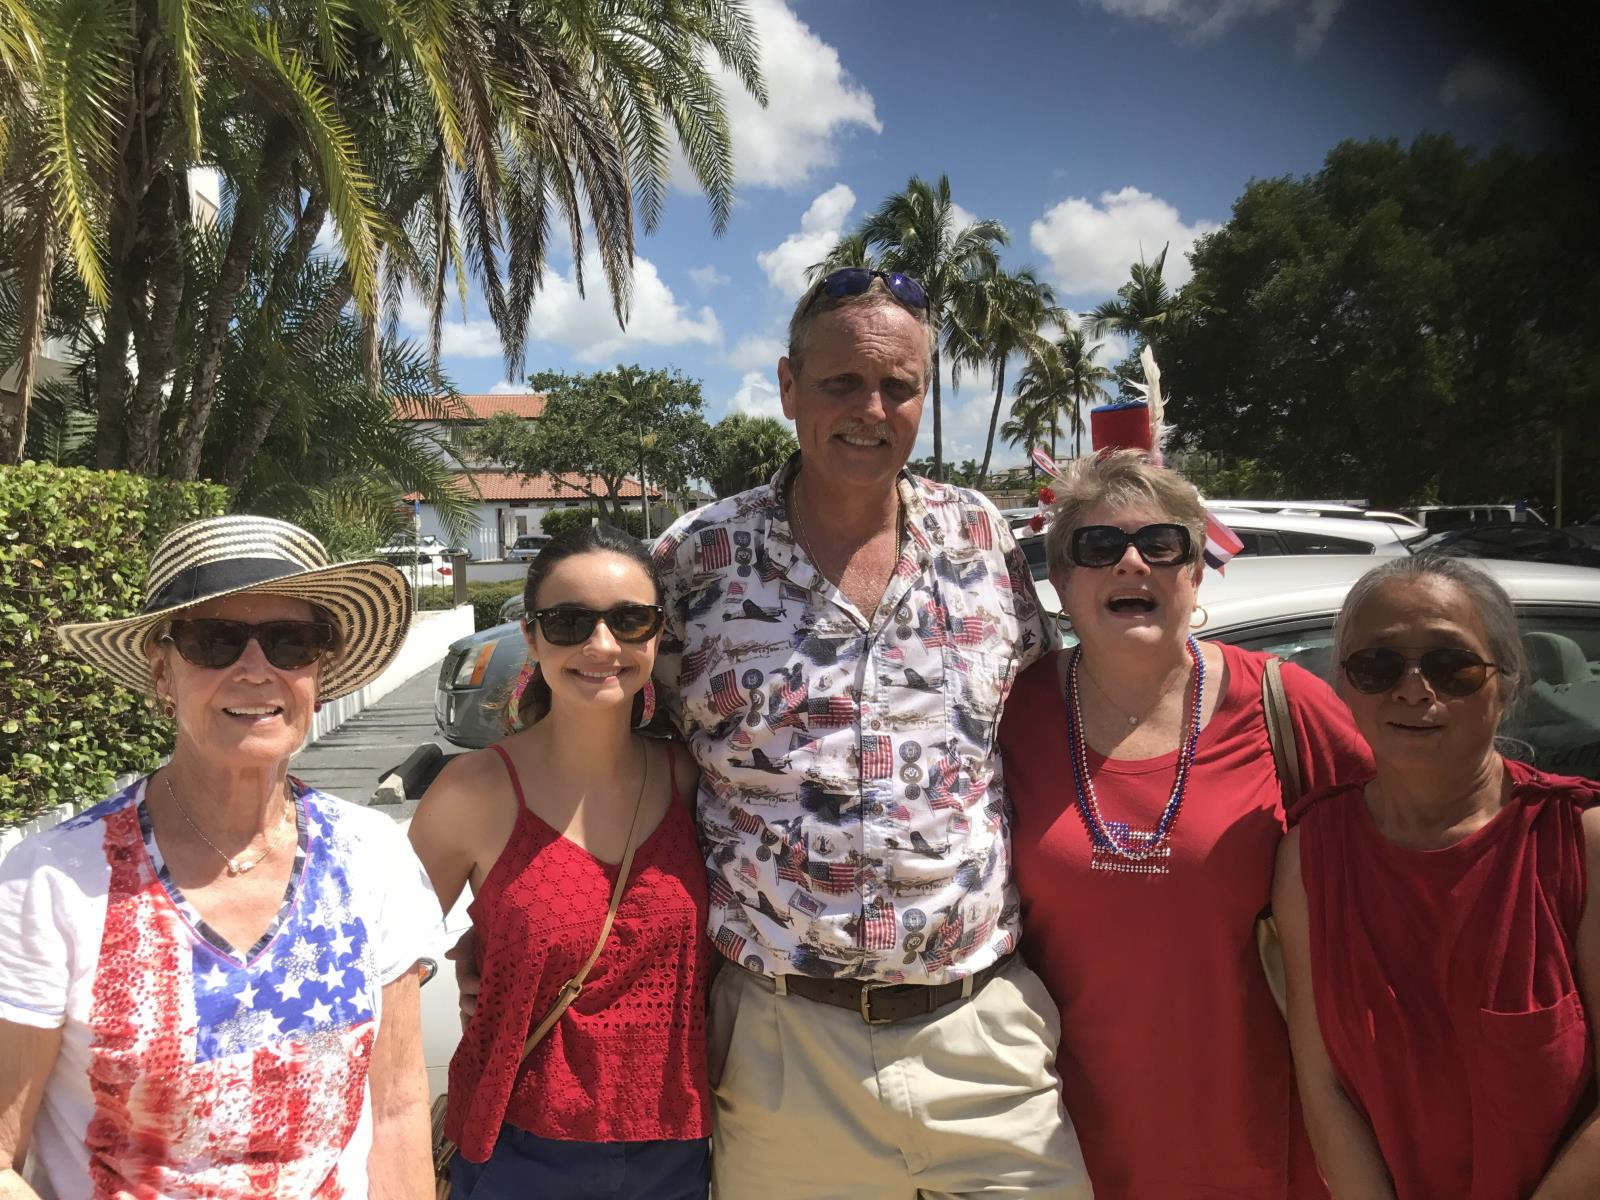 Naples 4th of July Parade 2017